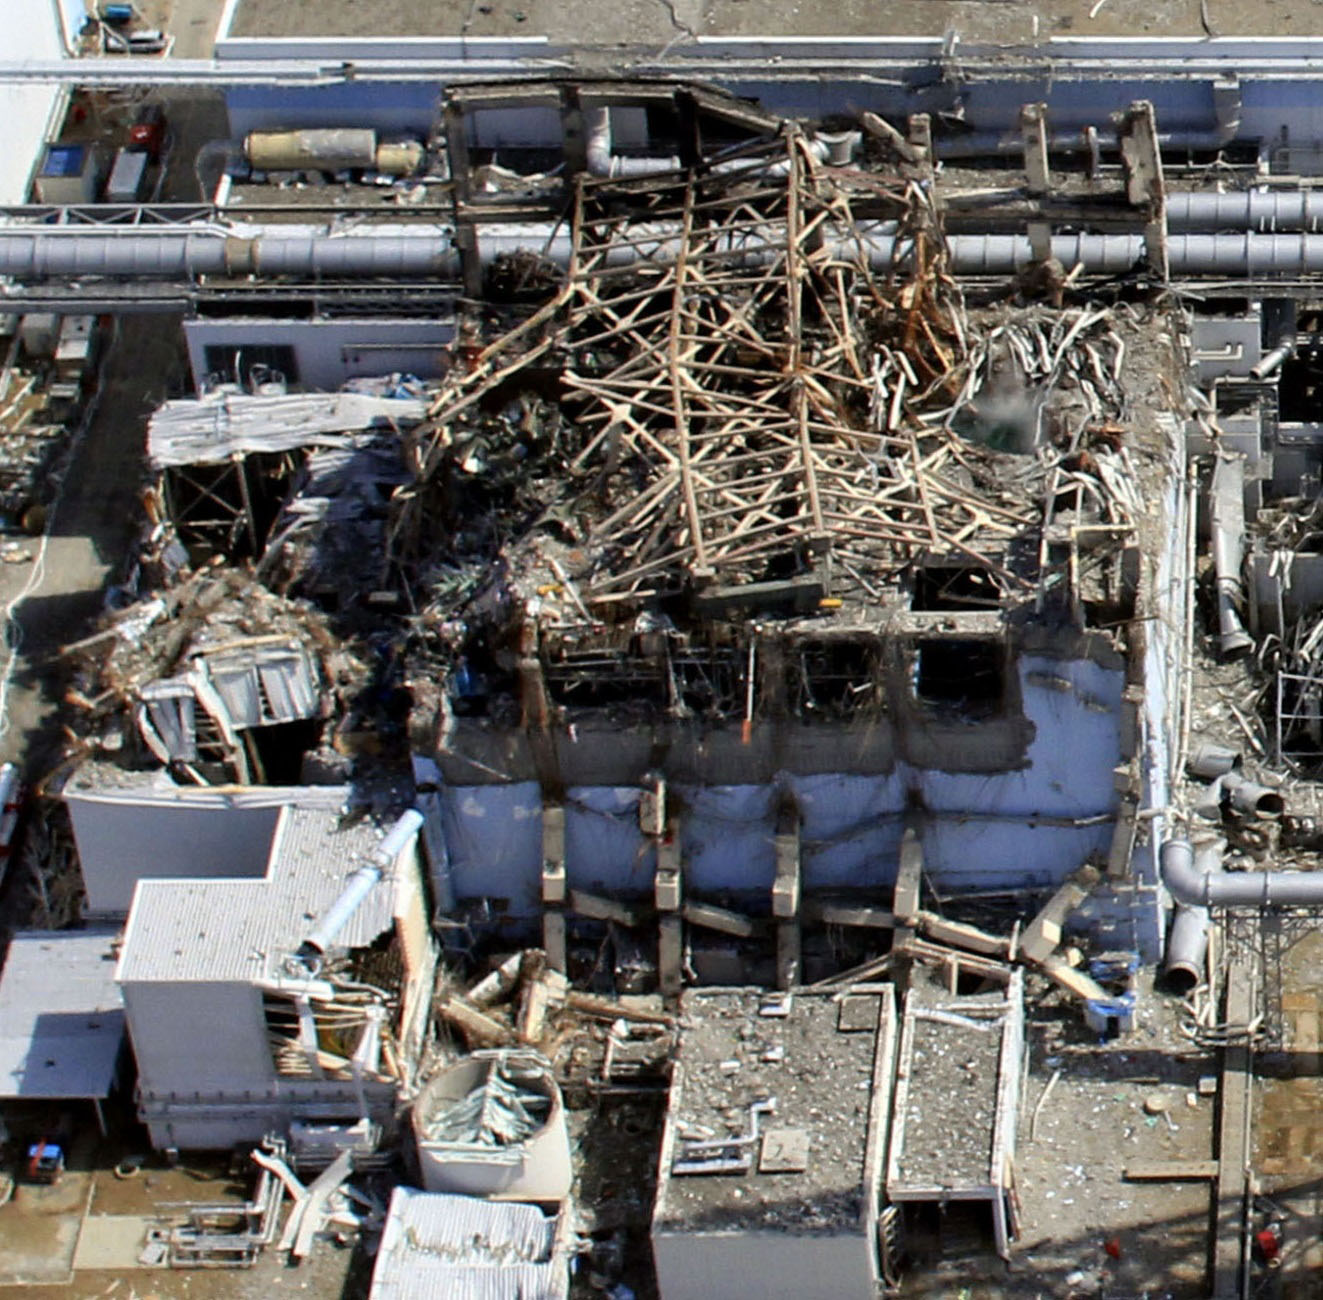 fukushima nuclear power plant disaster case study The huge earthquake and tsunami that struck japan's fukushima daiichi nuclear power station on march 11 fukushima daiichi reactors entered commercial operation in the years from 1971 (reactor 1) to studies of the fukushima disaster have identified design changes, response actions, and other.